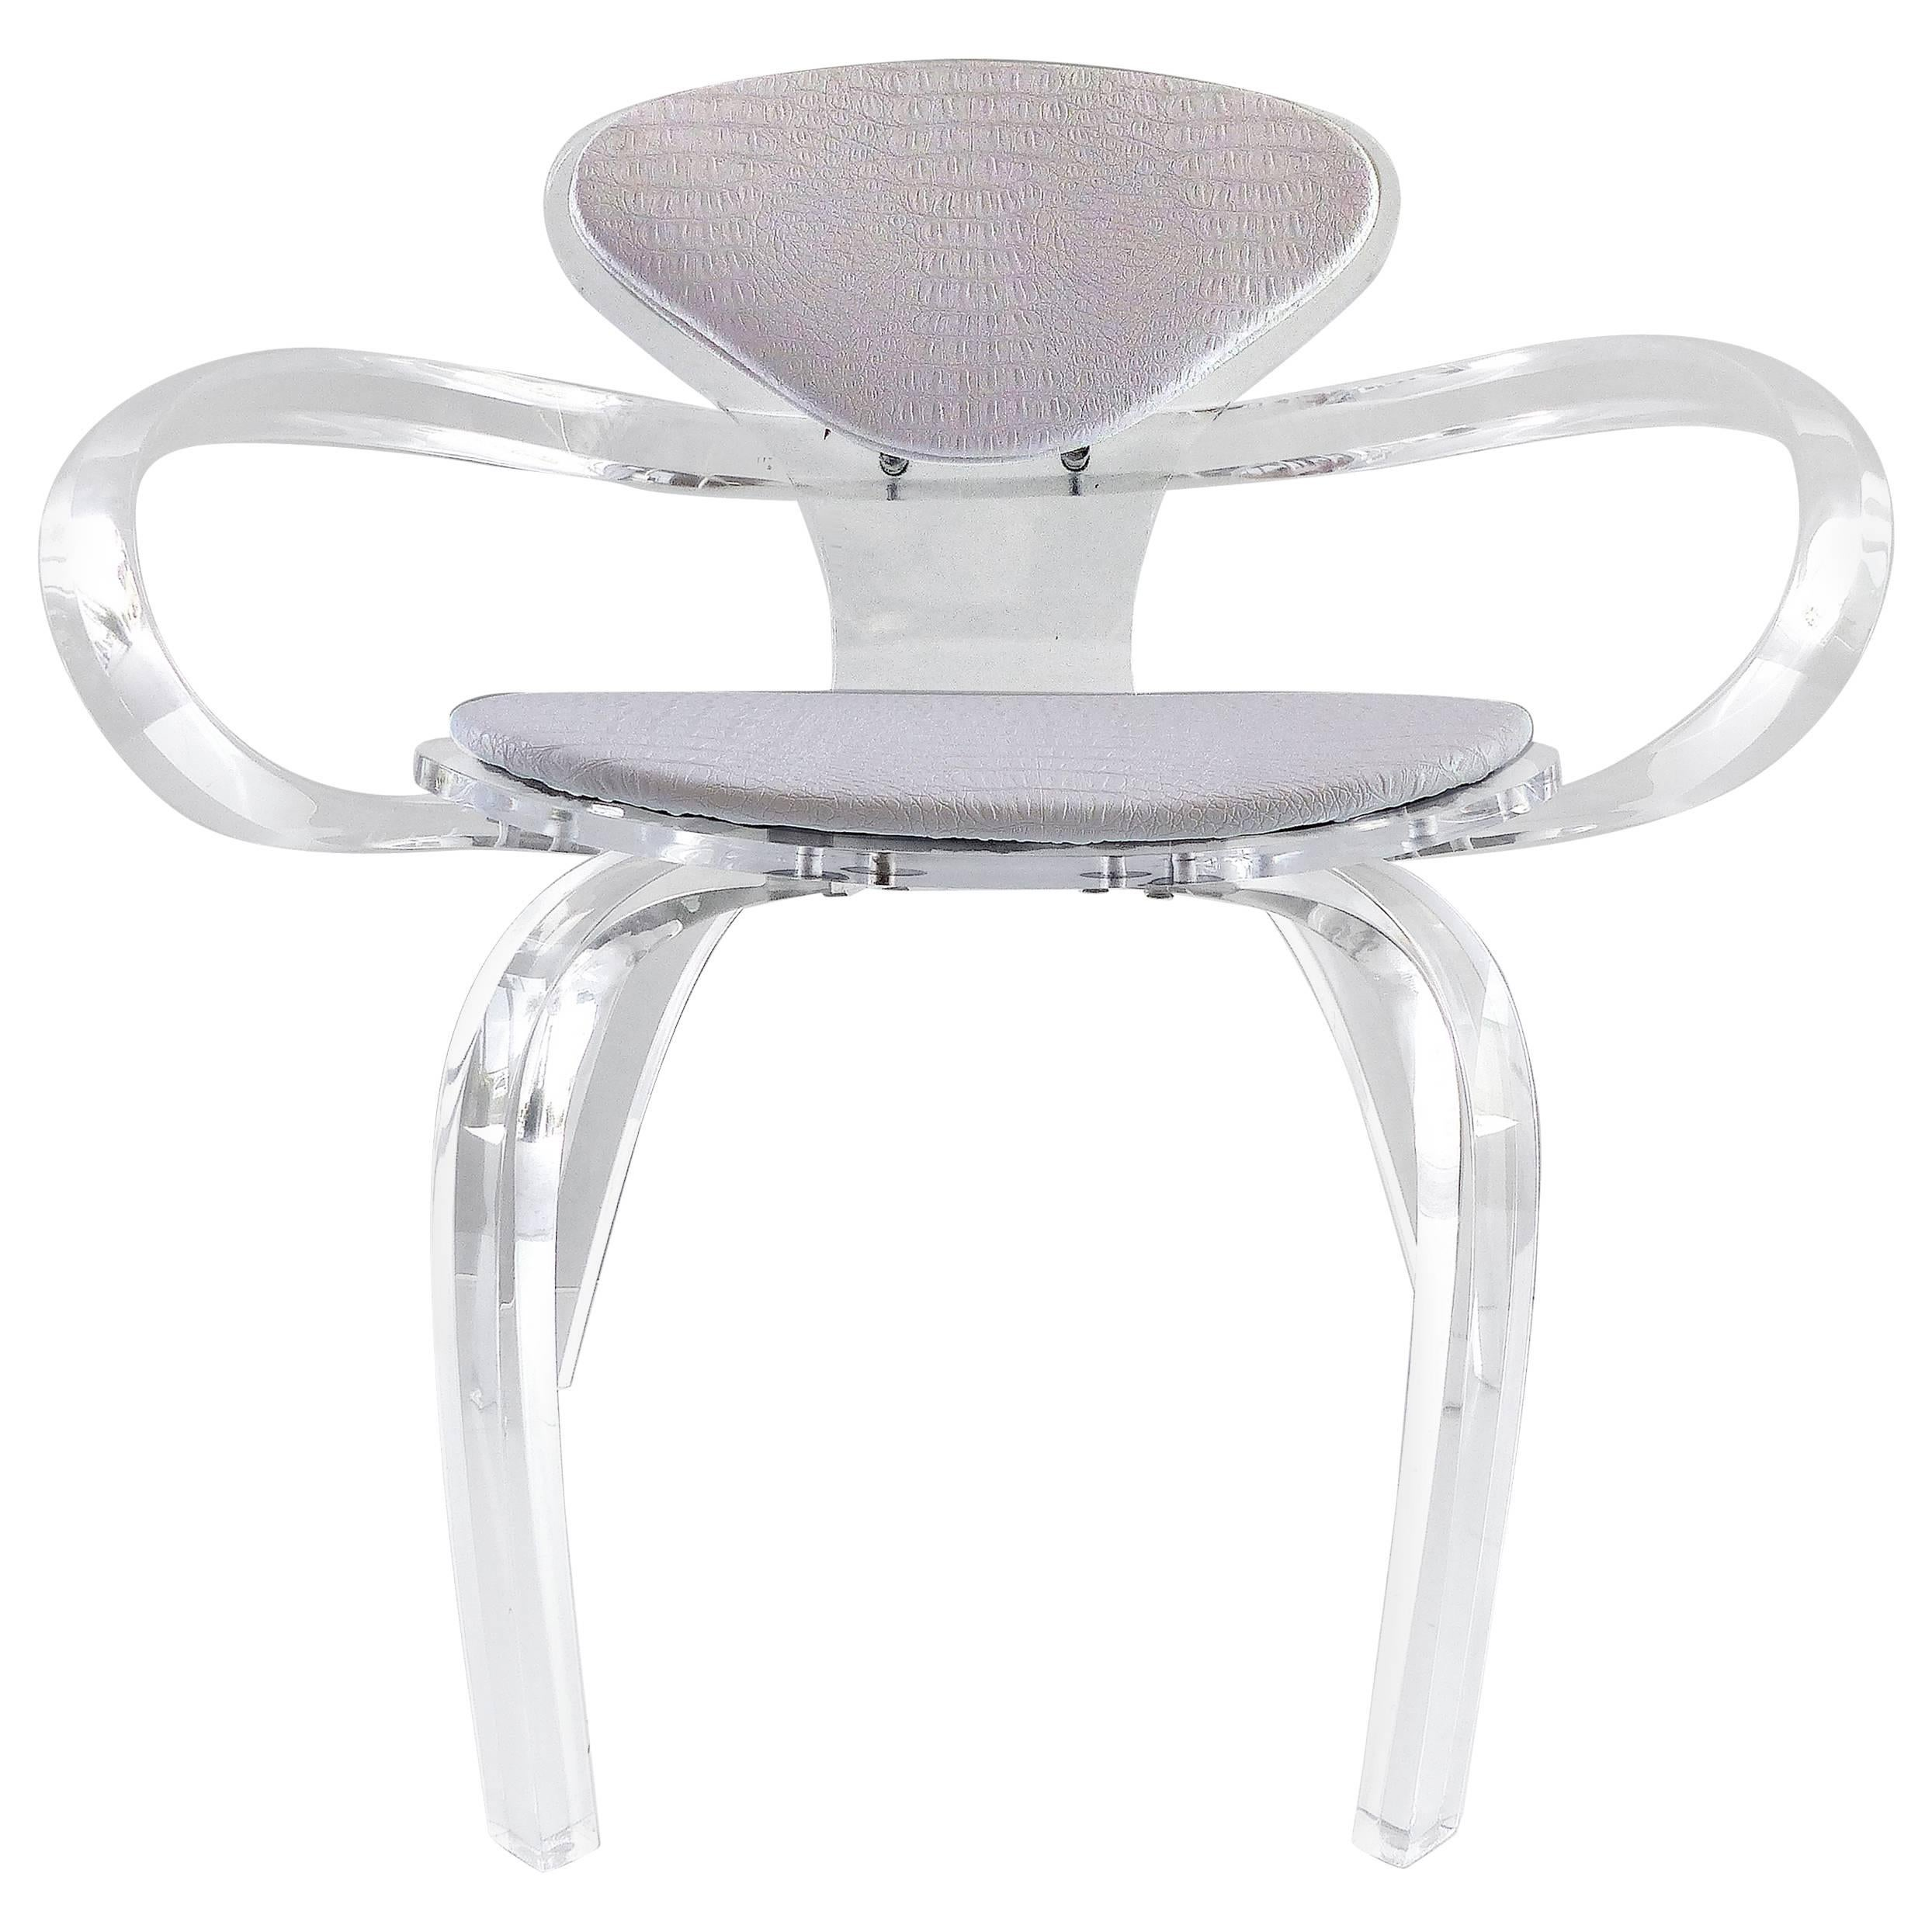 custommade lucite pretzel chair inspired by the norman cherner classic 1